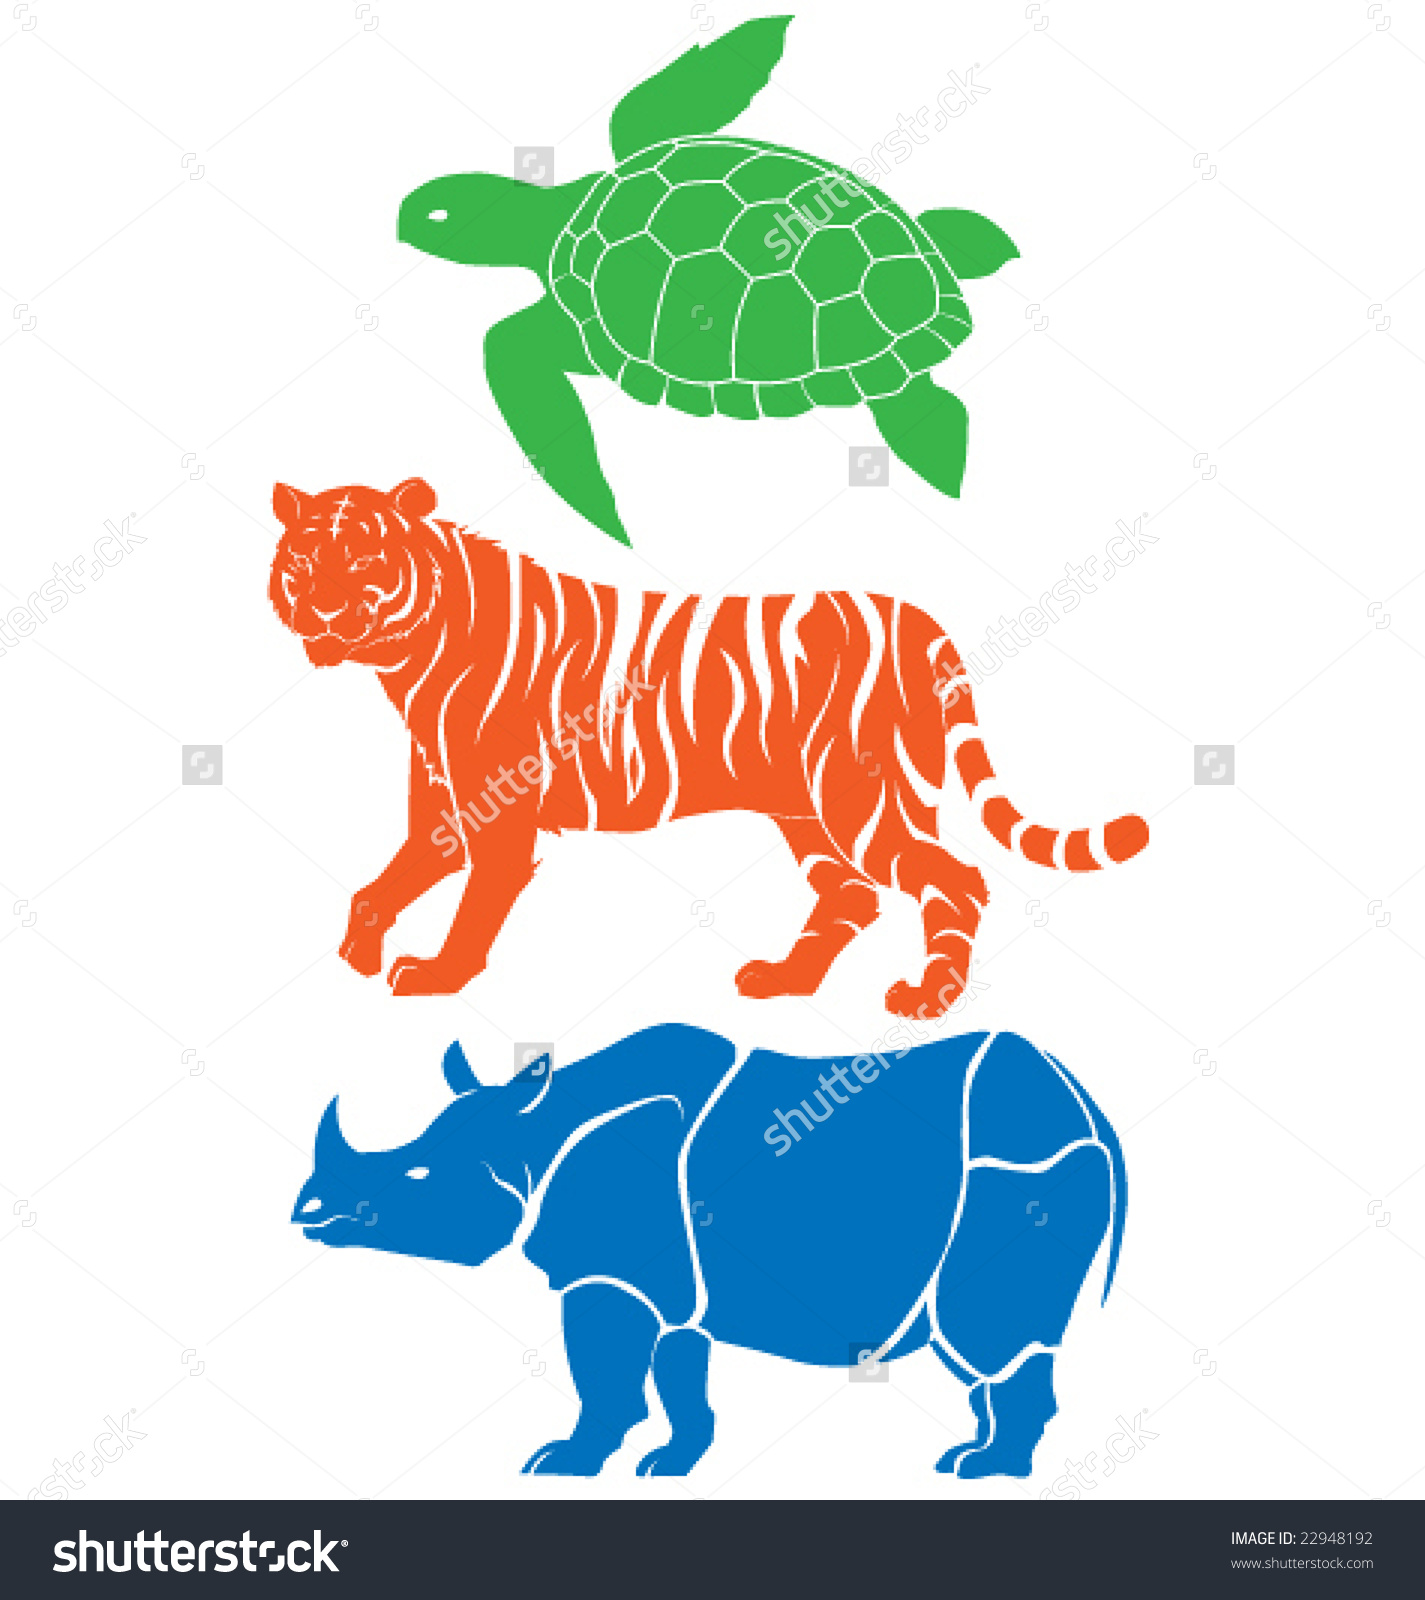 Rhino, Tiger And Sea Turtle Vector.